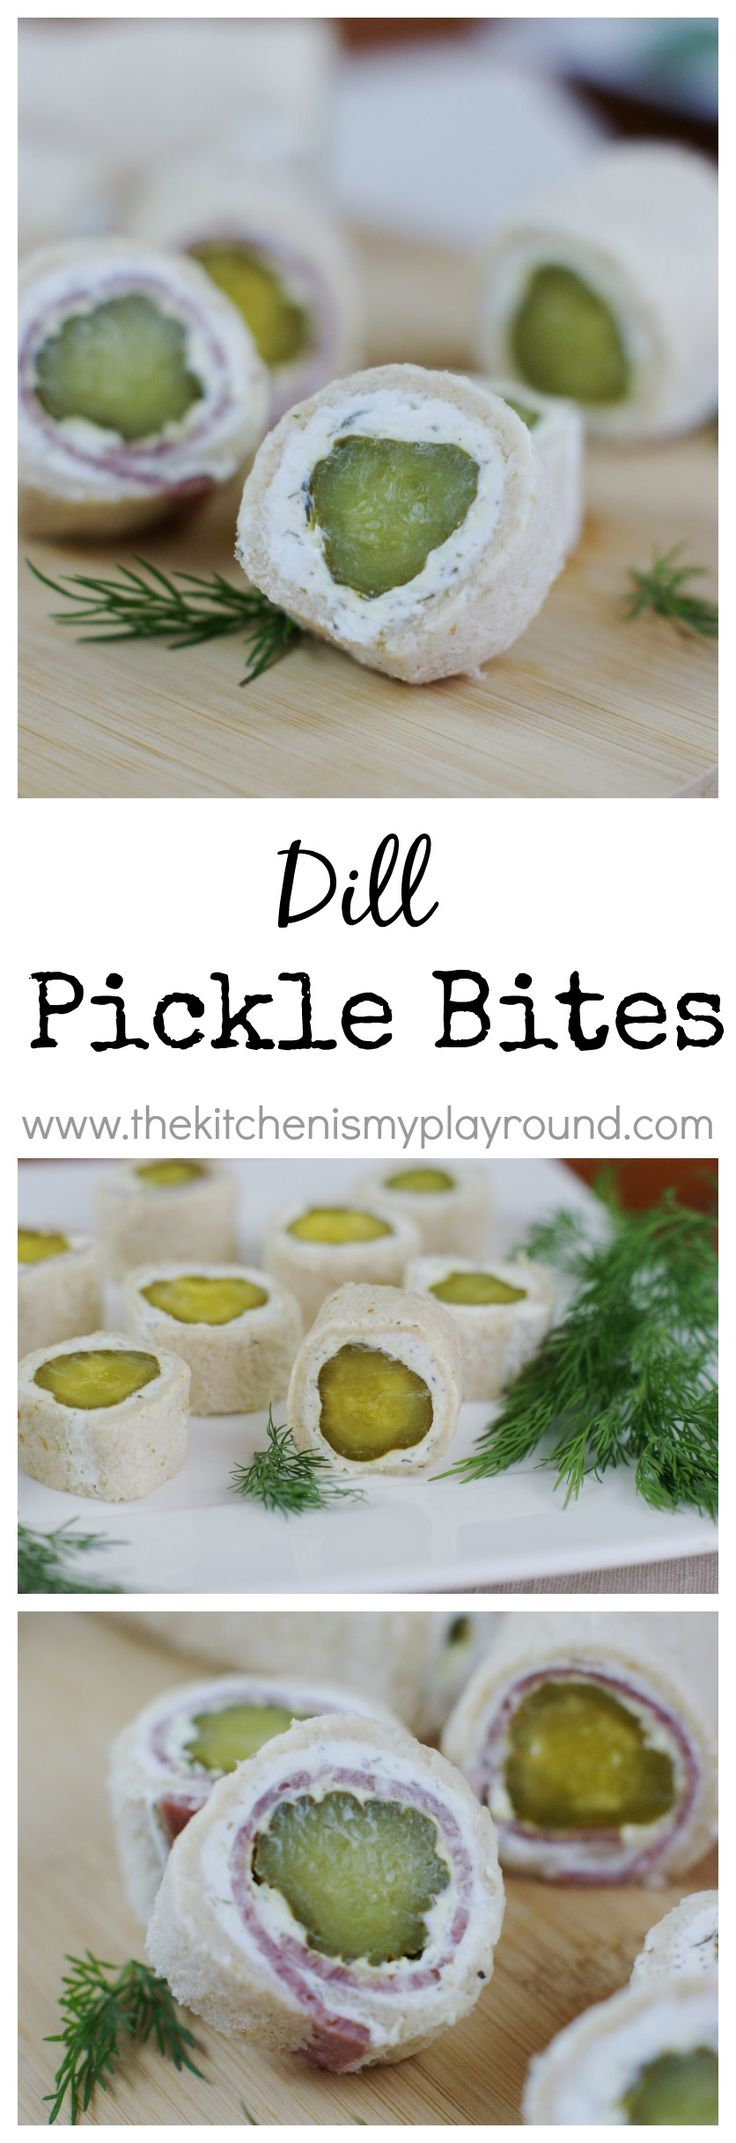 Dill Pickle Bites ~ the crunch and zing of dill pickles in a tasty little bite.   www.thekitchenismyplayground.com